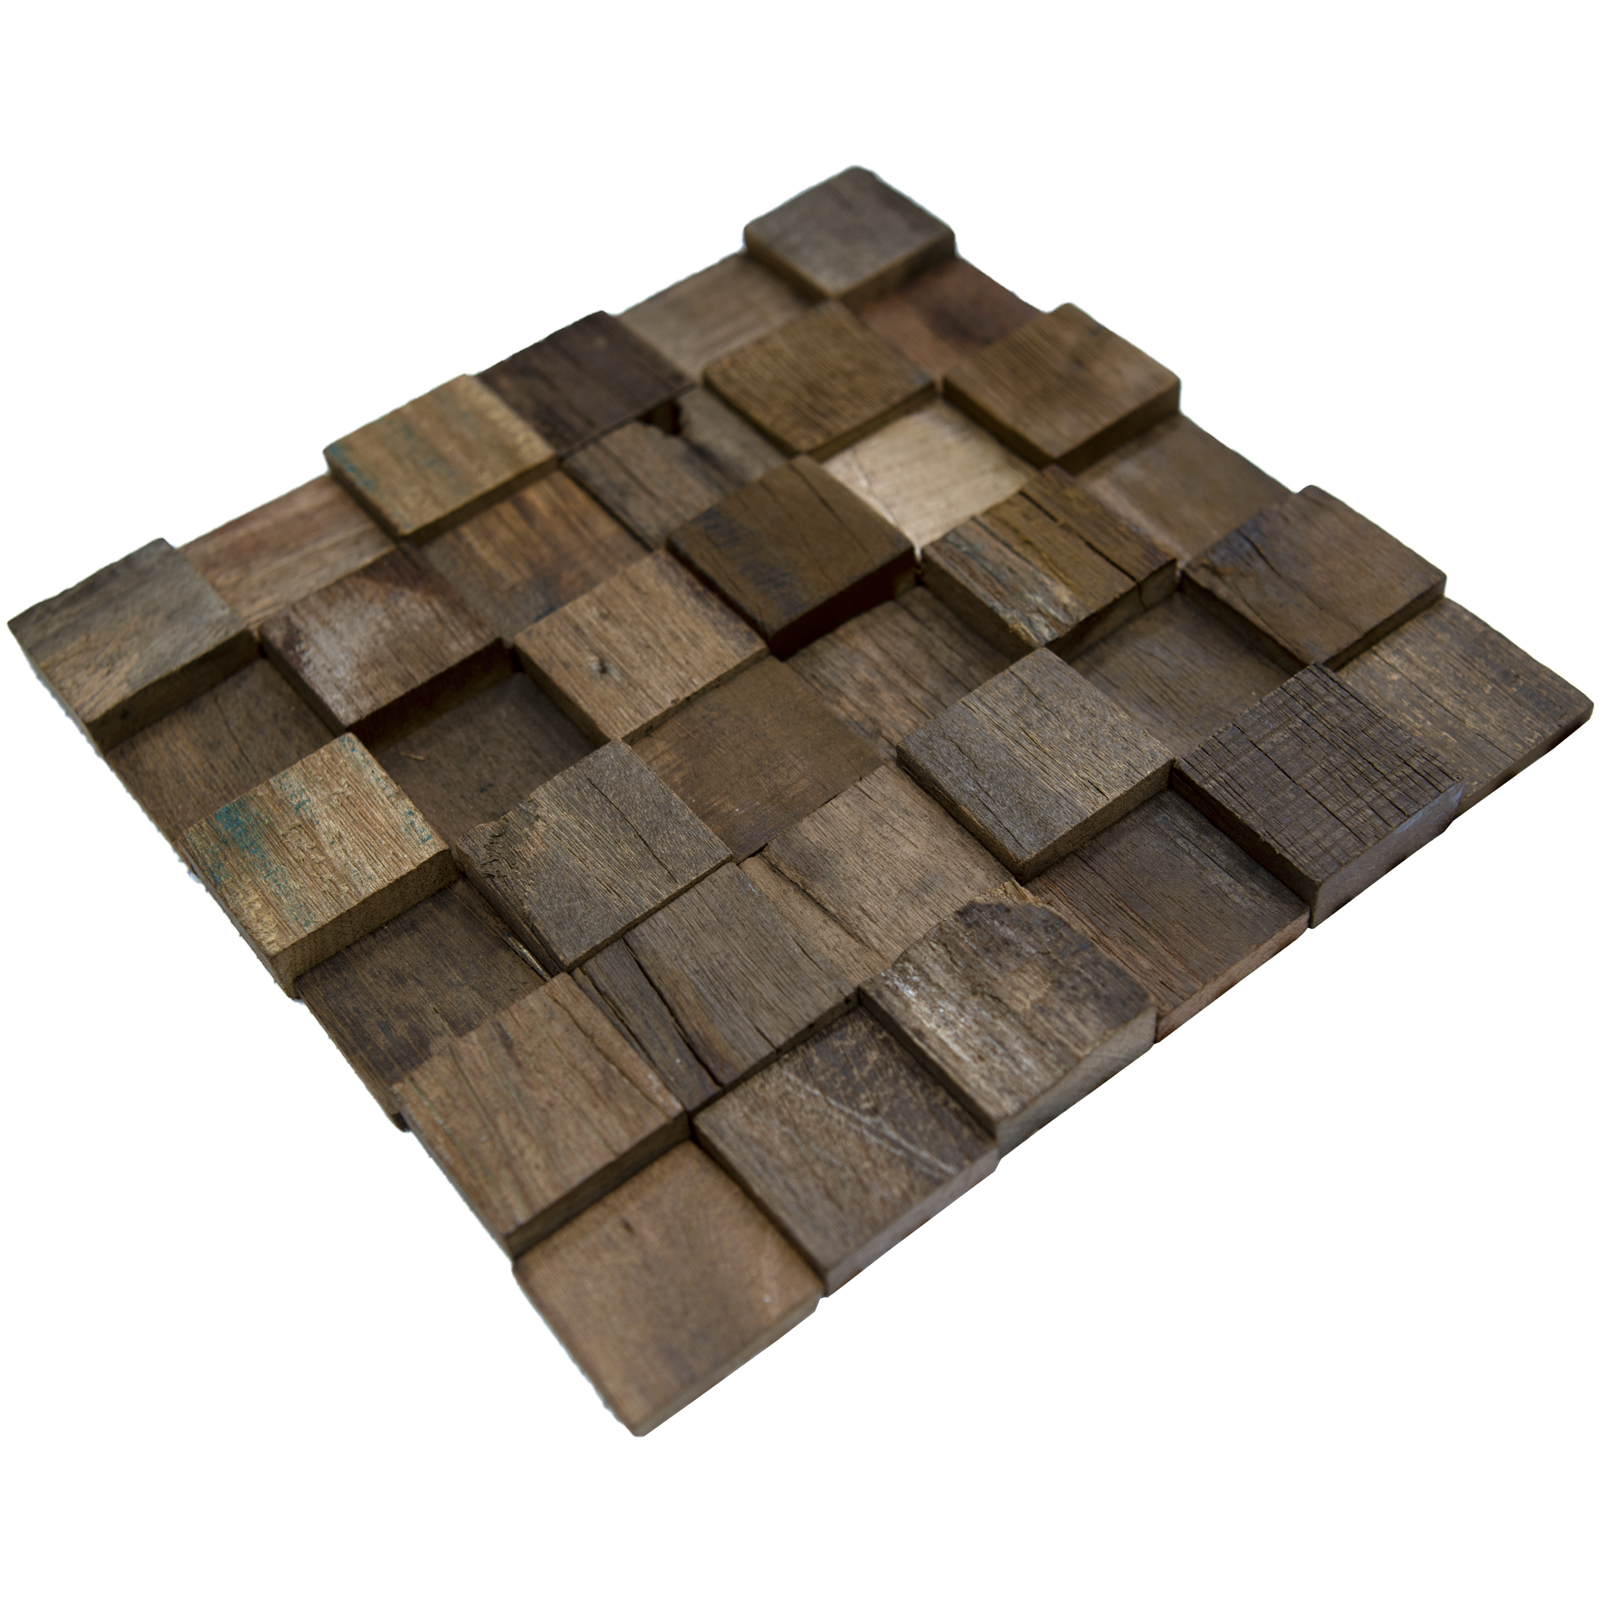 A15017 - Reclaimed Wood Wall Tile Ancient Boat Wood Panels, Set of 11